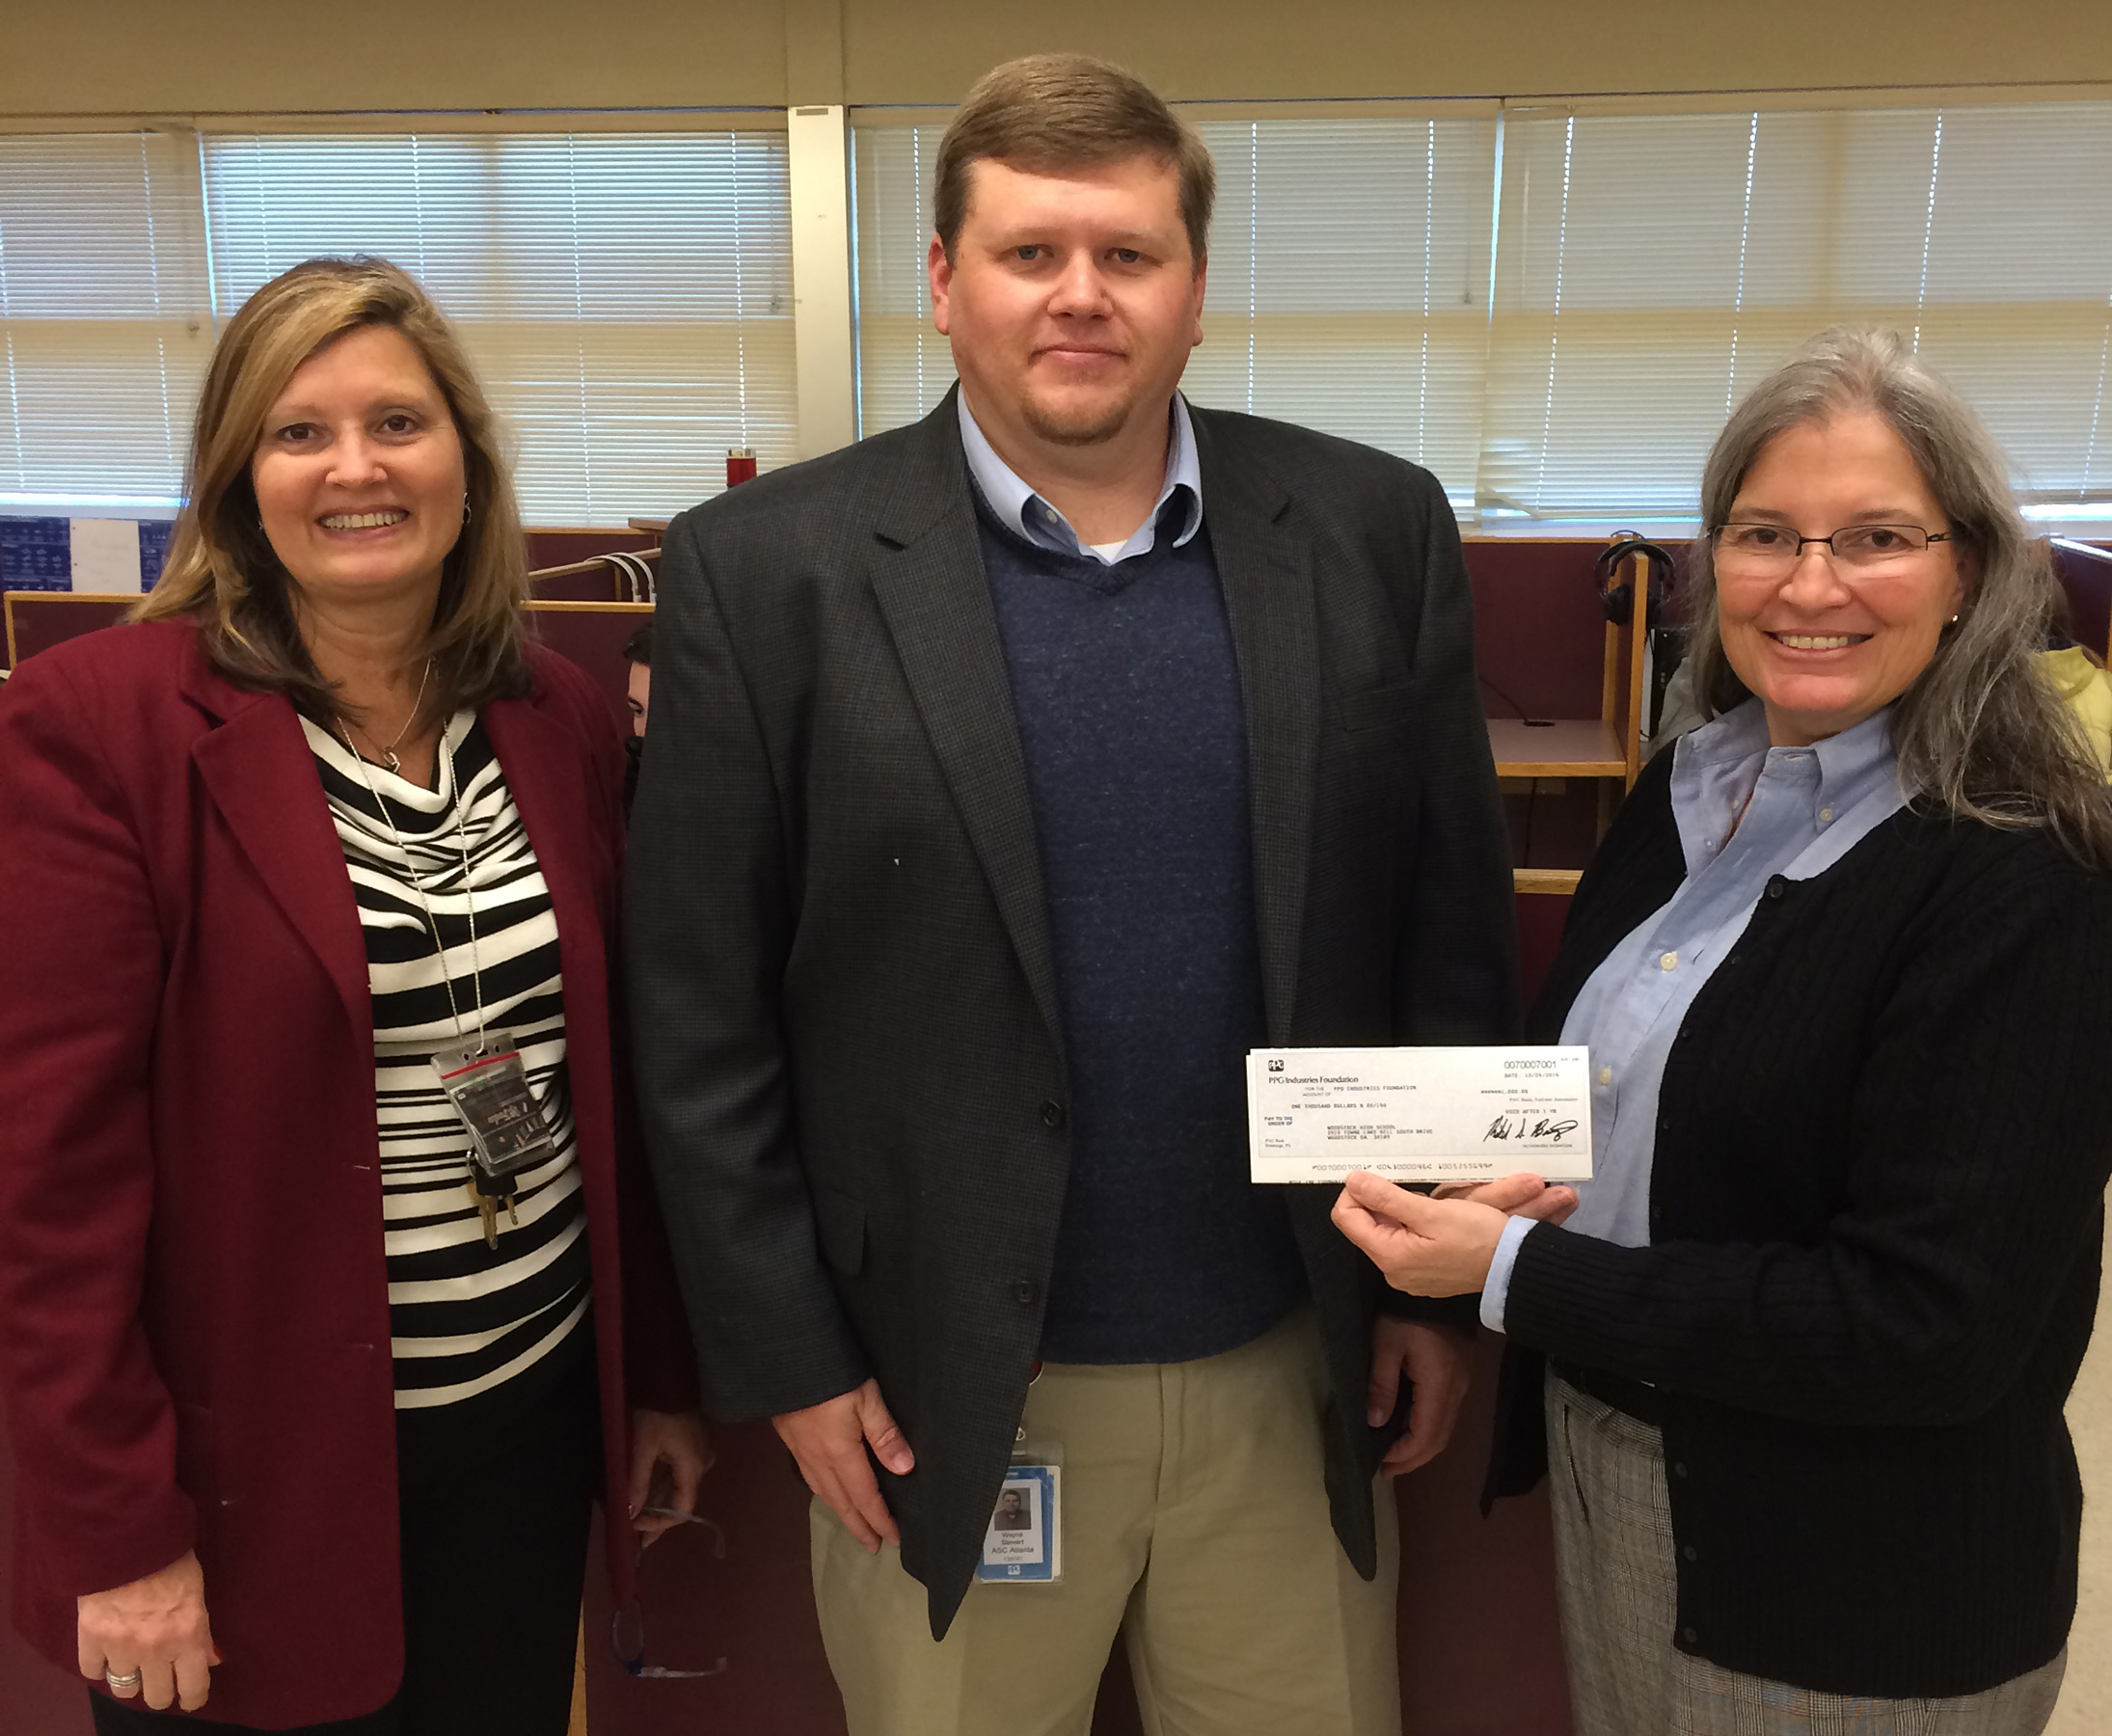 Ppg Innovative Classroom Grant Application ~ Ppg foundation supports woodstock high school mode